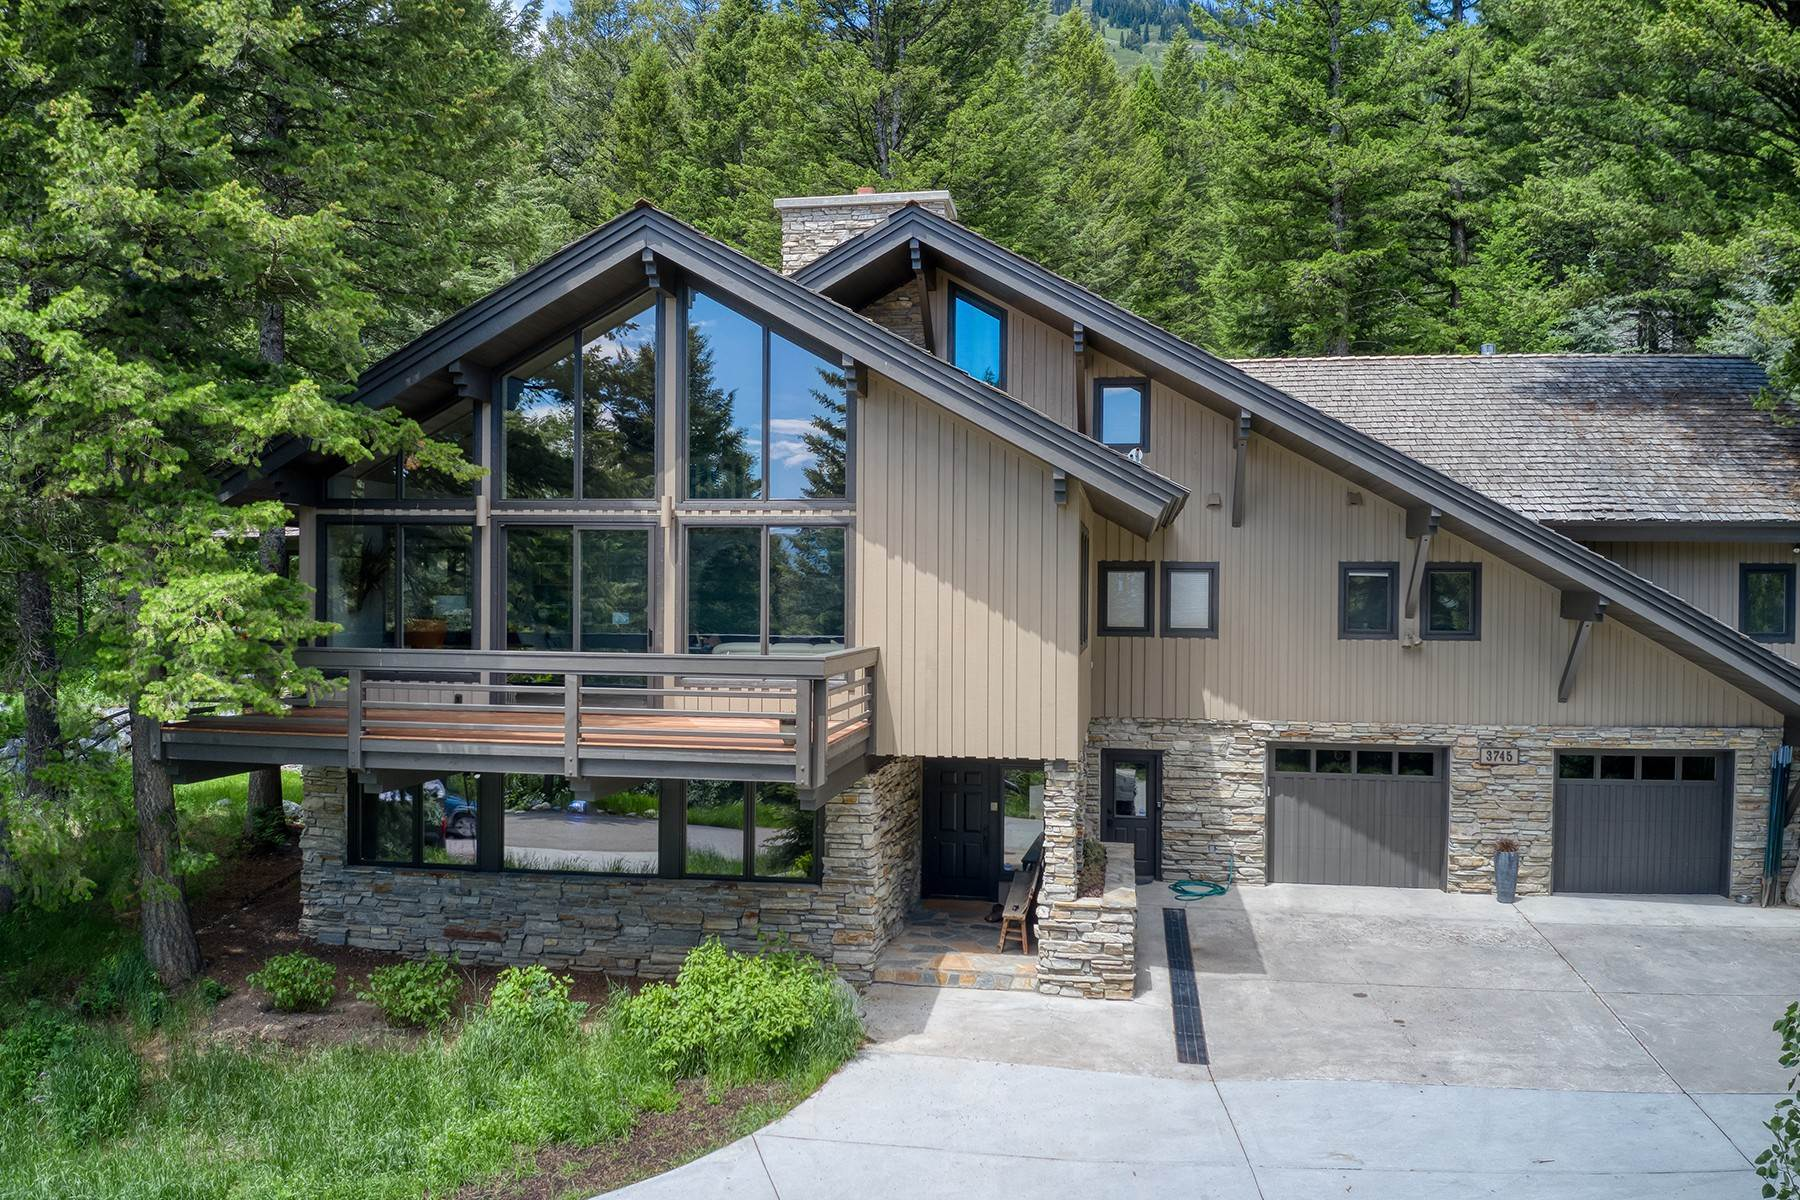 Single Family Homes for Sale at Room to Roam in Teton Village 3745 W Curtis Drive Teton Village, Wyoming 83025 United States